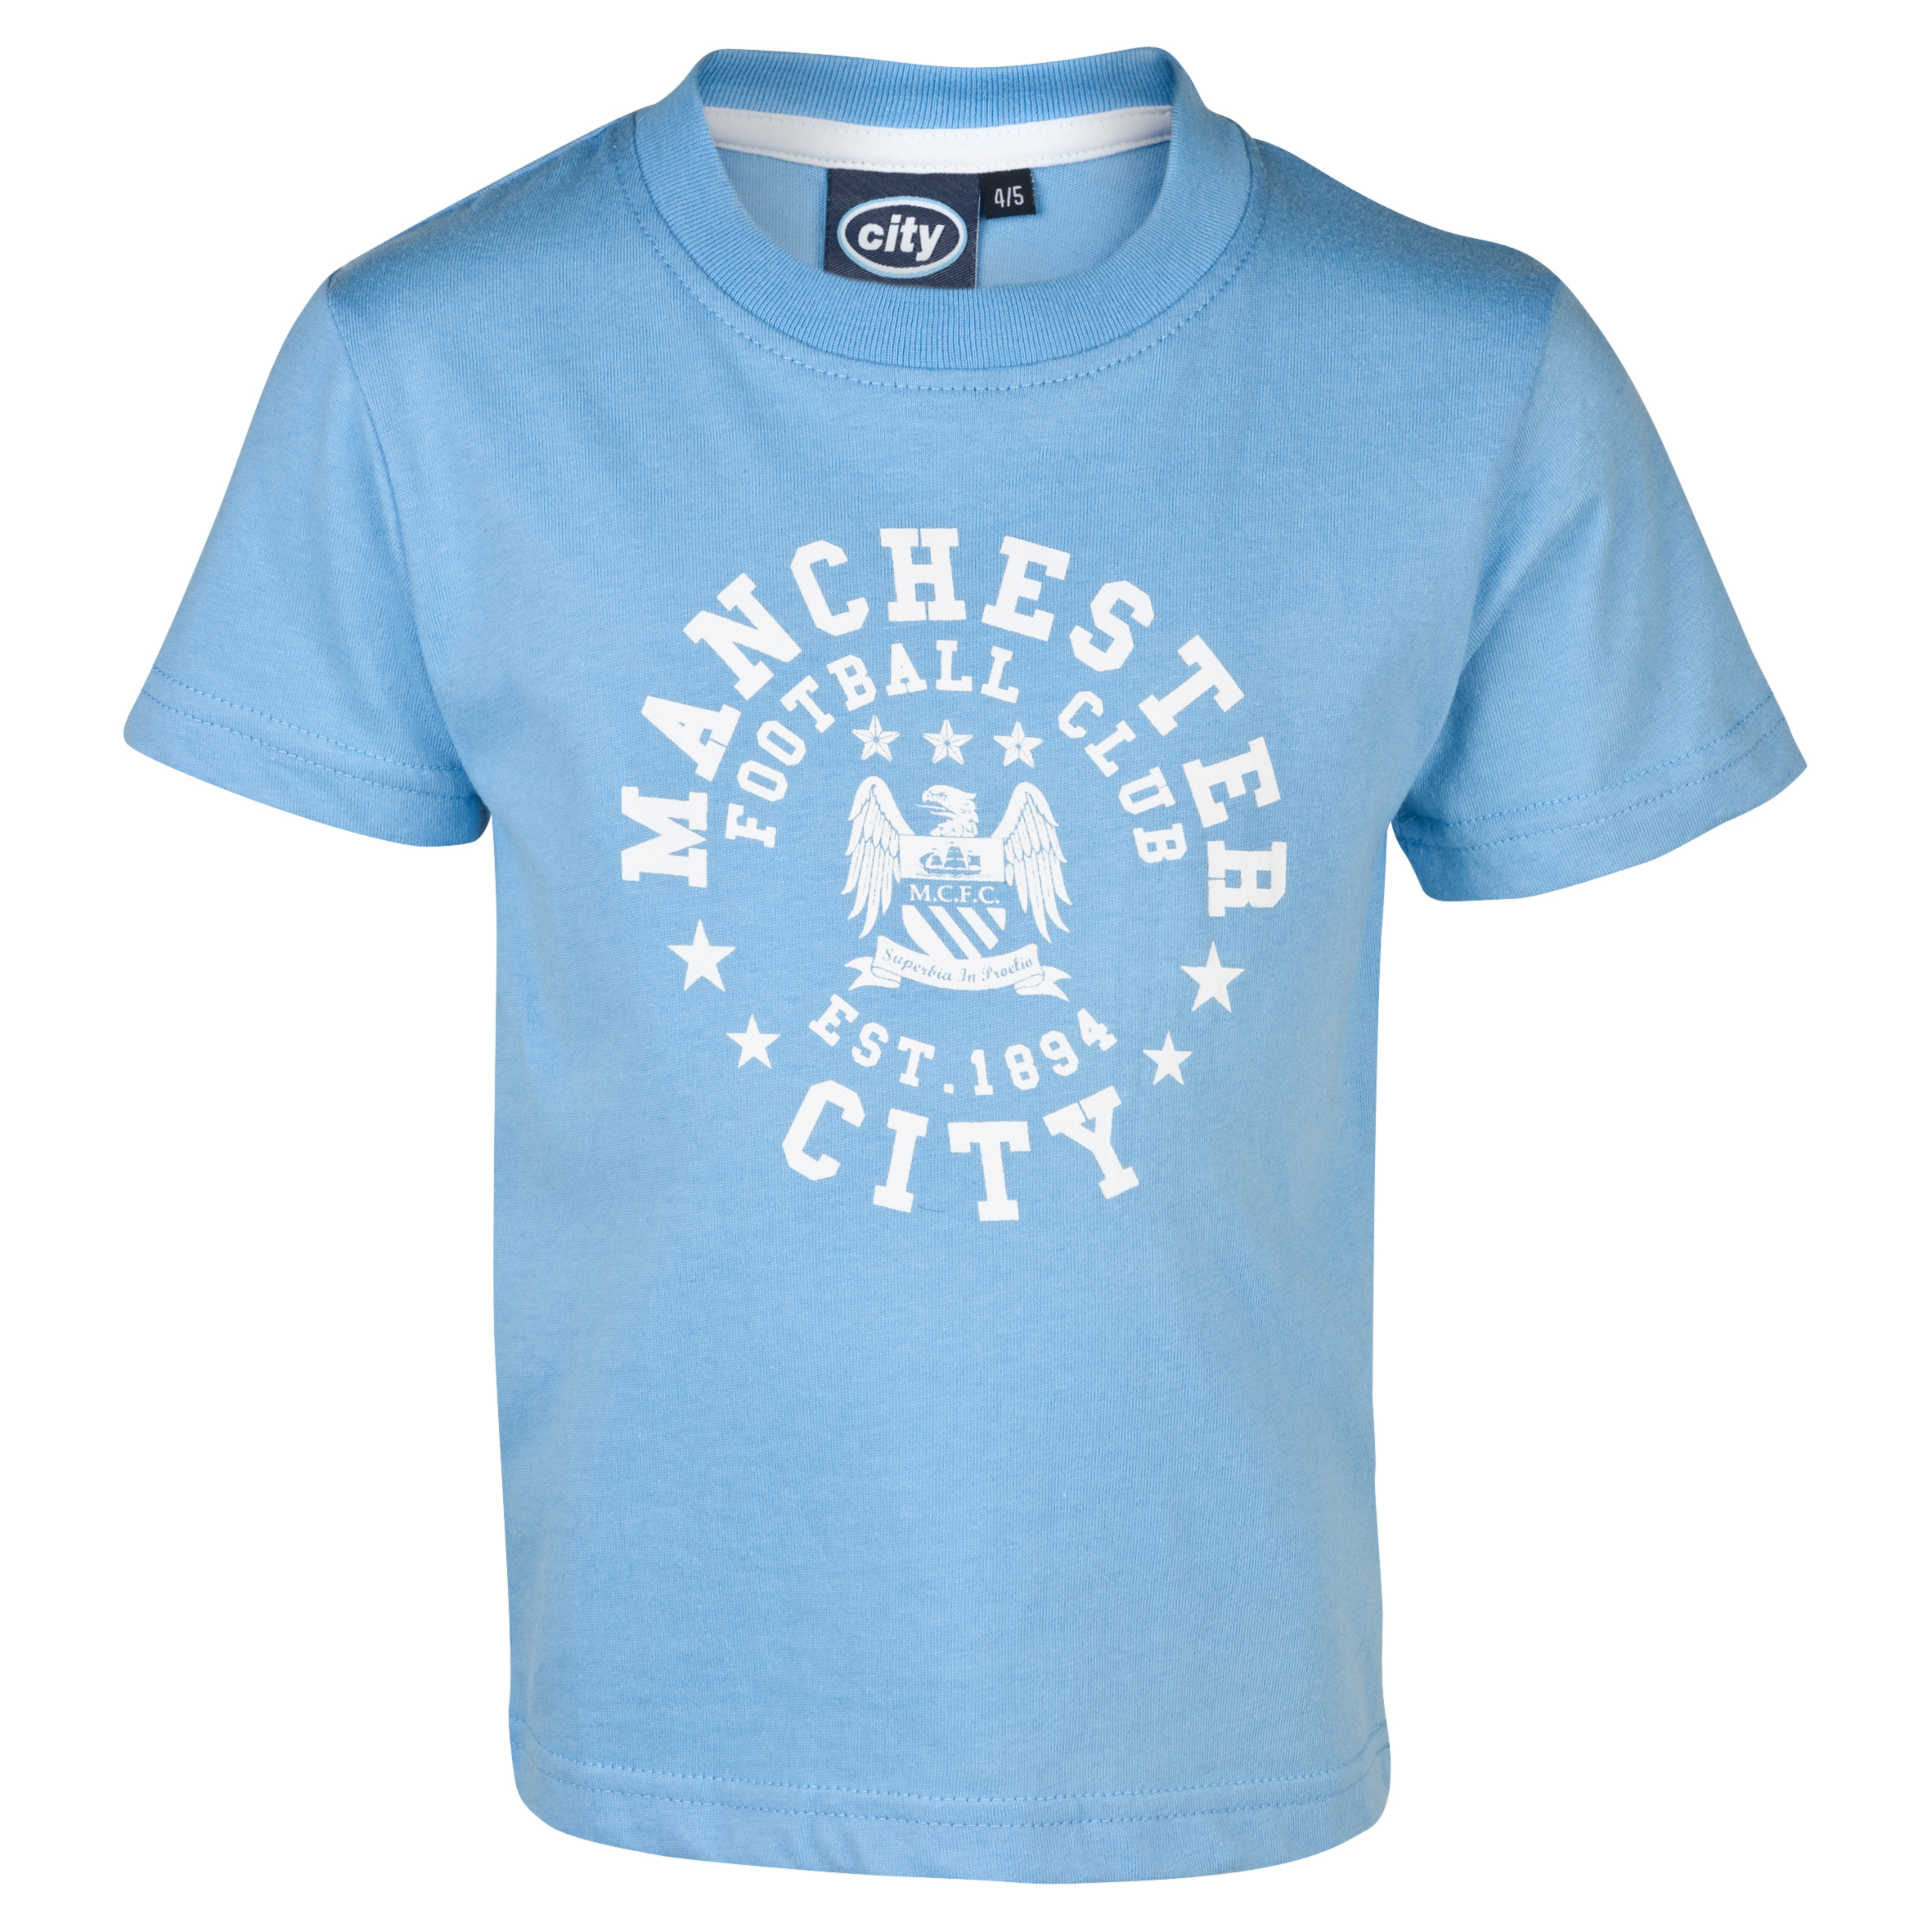 Manchester City Essentials Motif T-Shirt - Infant Boys Lt Blue